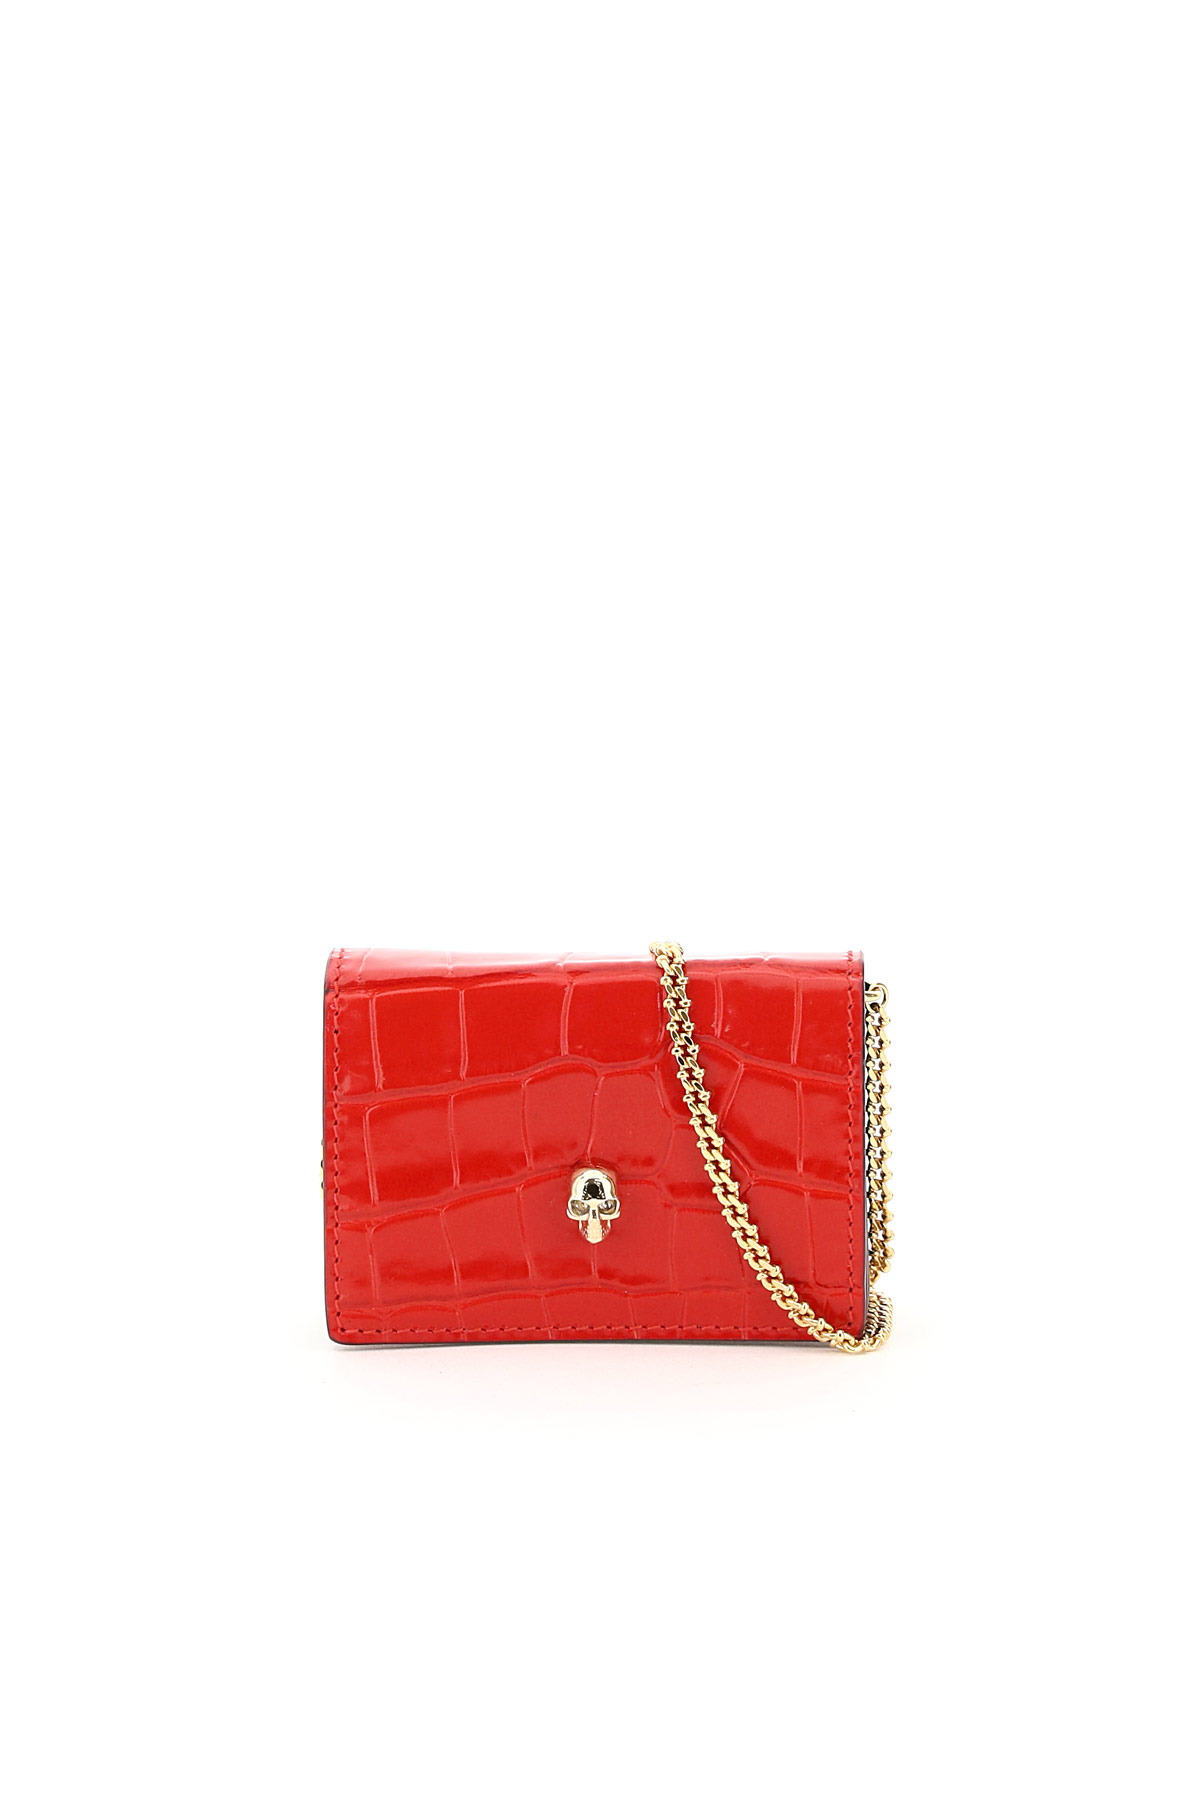 ALEXANDER MCQUEEN SKULL MICRO BAG OS Red Leather